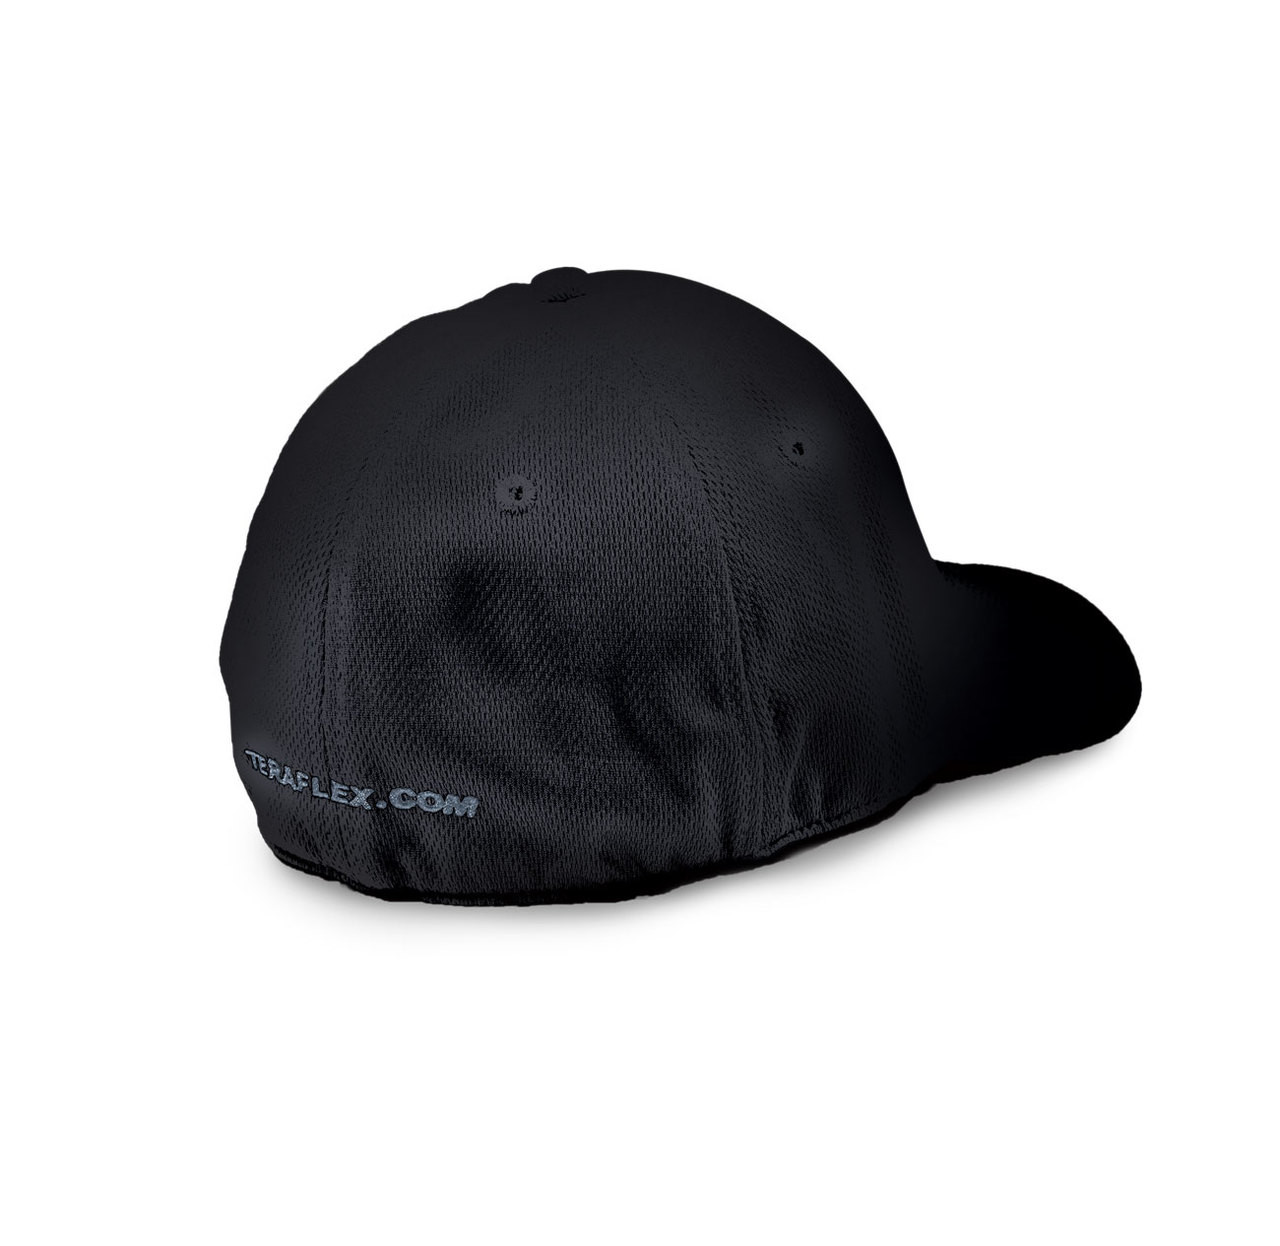 ee053f260e2 Teraflex Pro Style Stretch Hat - Black - Universal Fit - Hill ...